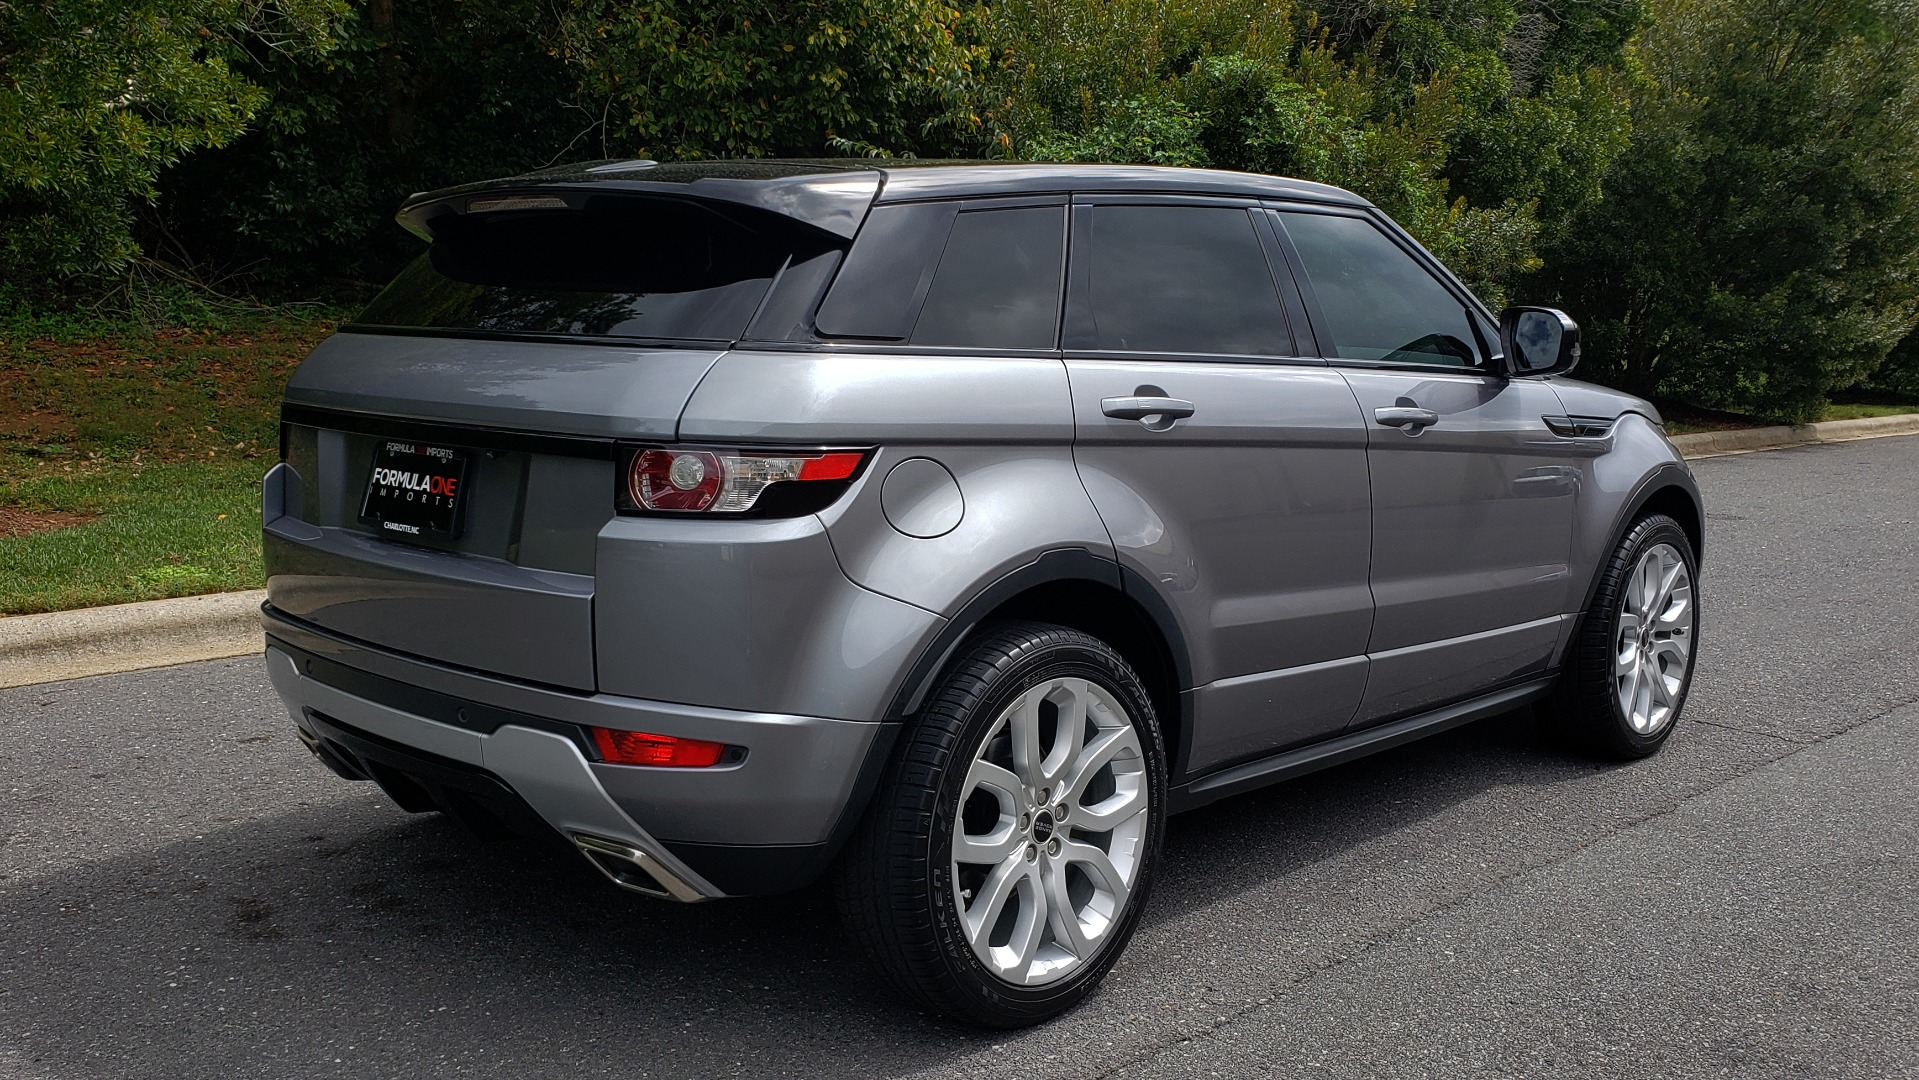 Used 2013 Land Rover RANGE ROVER EVOQUE DYNAMIC PREMIUM / NAV / PANO-ROOF / BLIND SPOT / REARVIEW for sale Sold at Formula Imports in Charlotte NC 28227 8